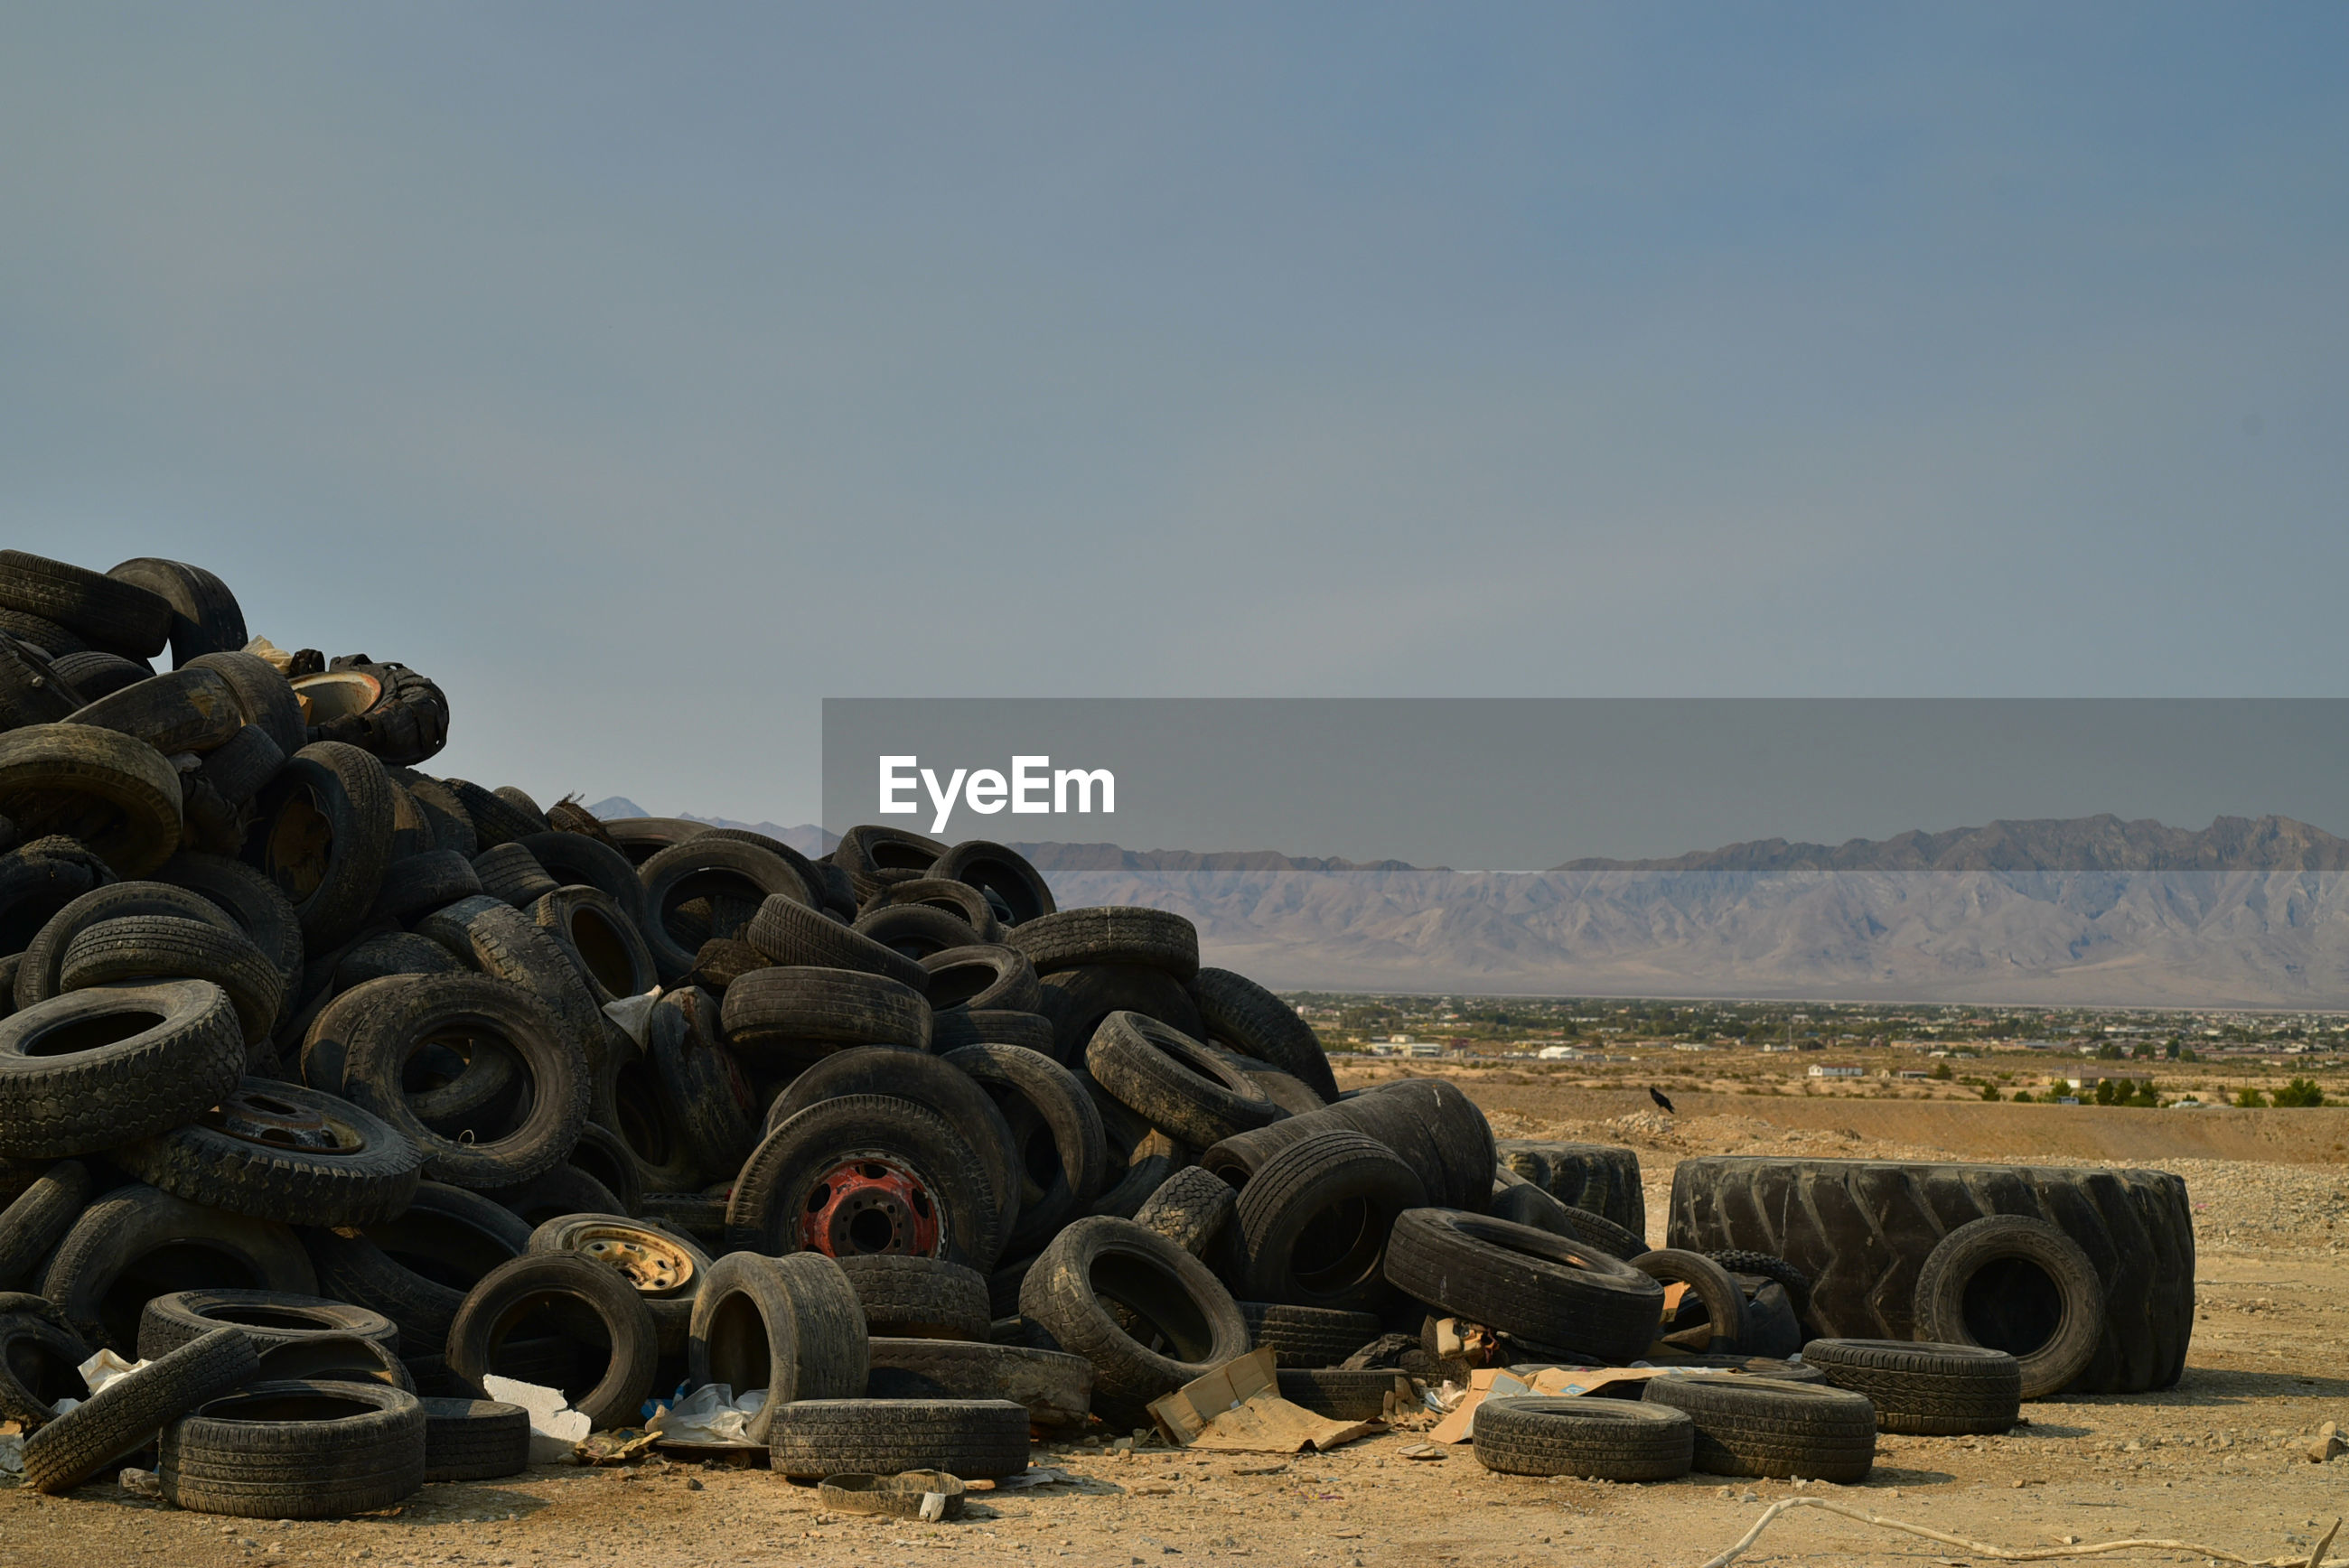 Worn-out vehicle tires piled in mojave desert with  distant mountains in pahrump, nevada, usa